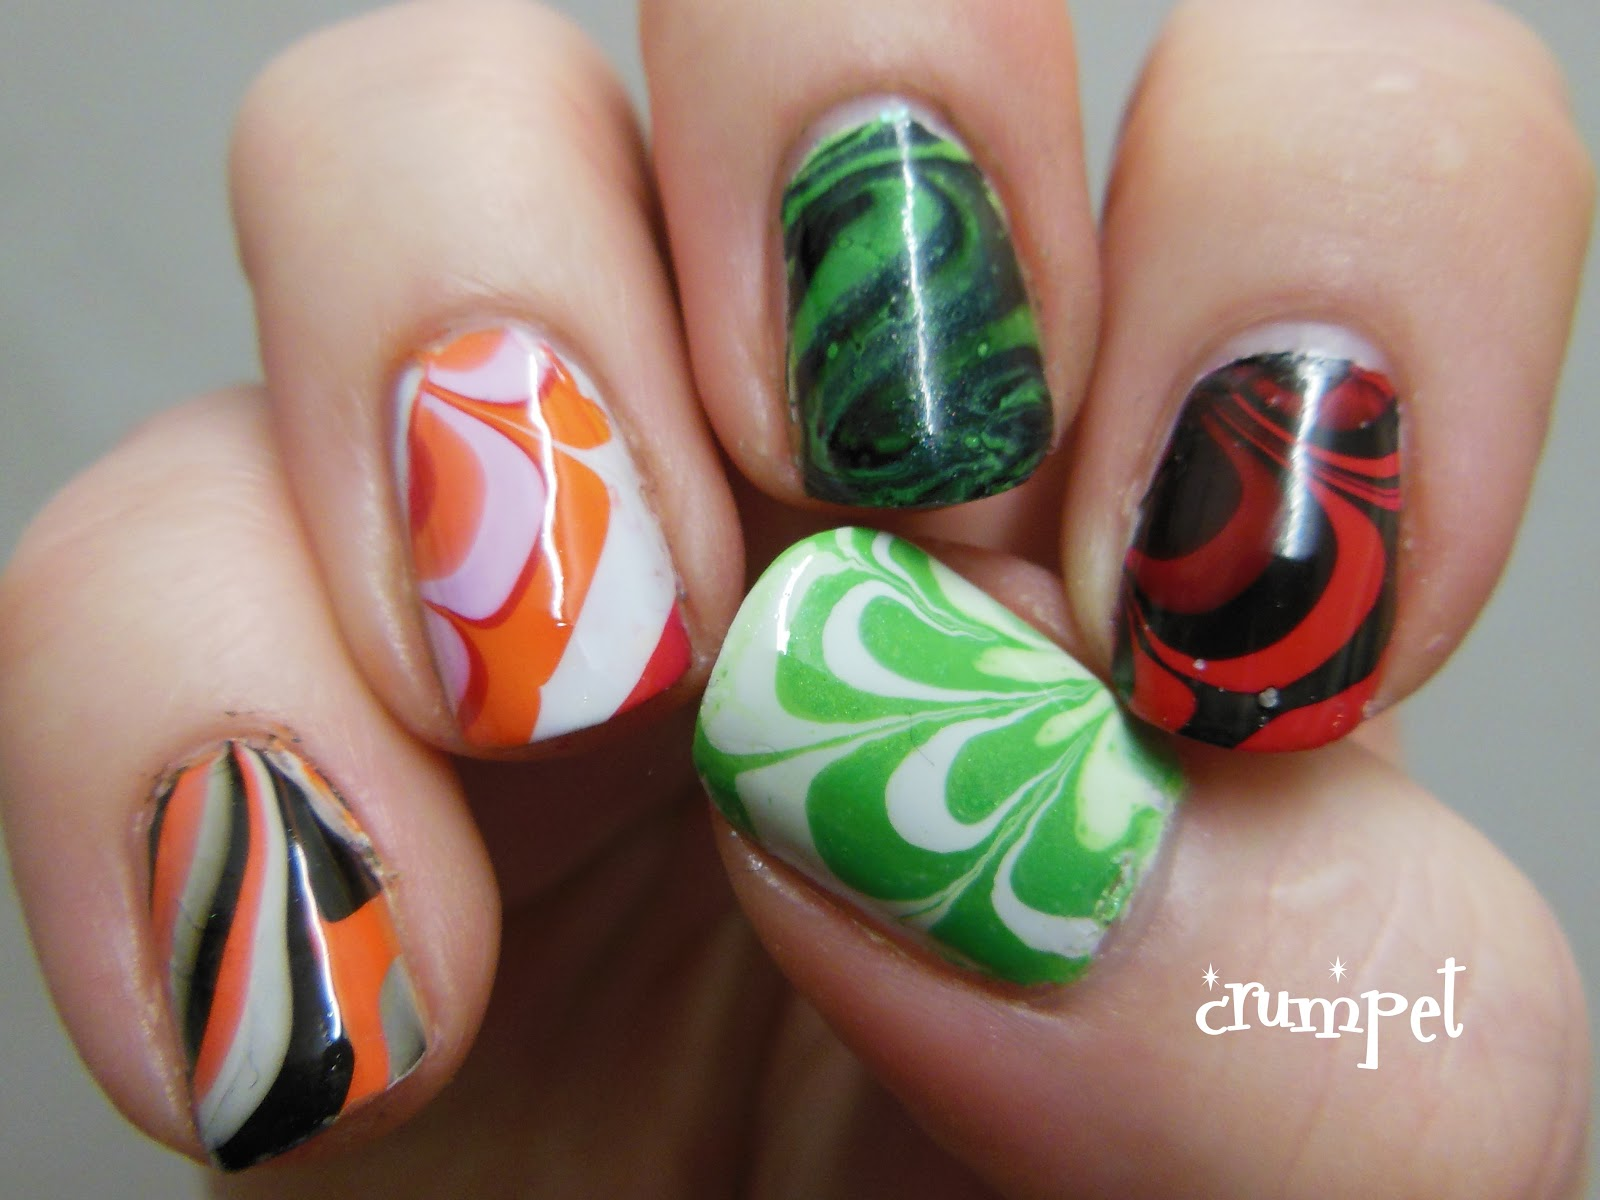 Rio nail art design kit rio professional nail art paint design view images the crumpet product review rio beauty water marble nail art kit prinsesfo Choice Image